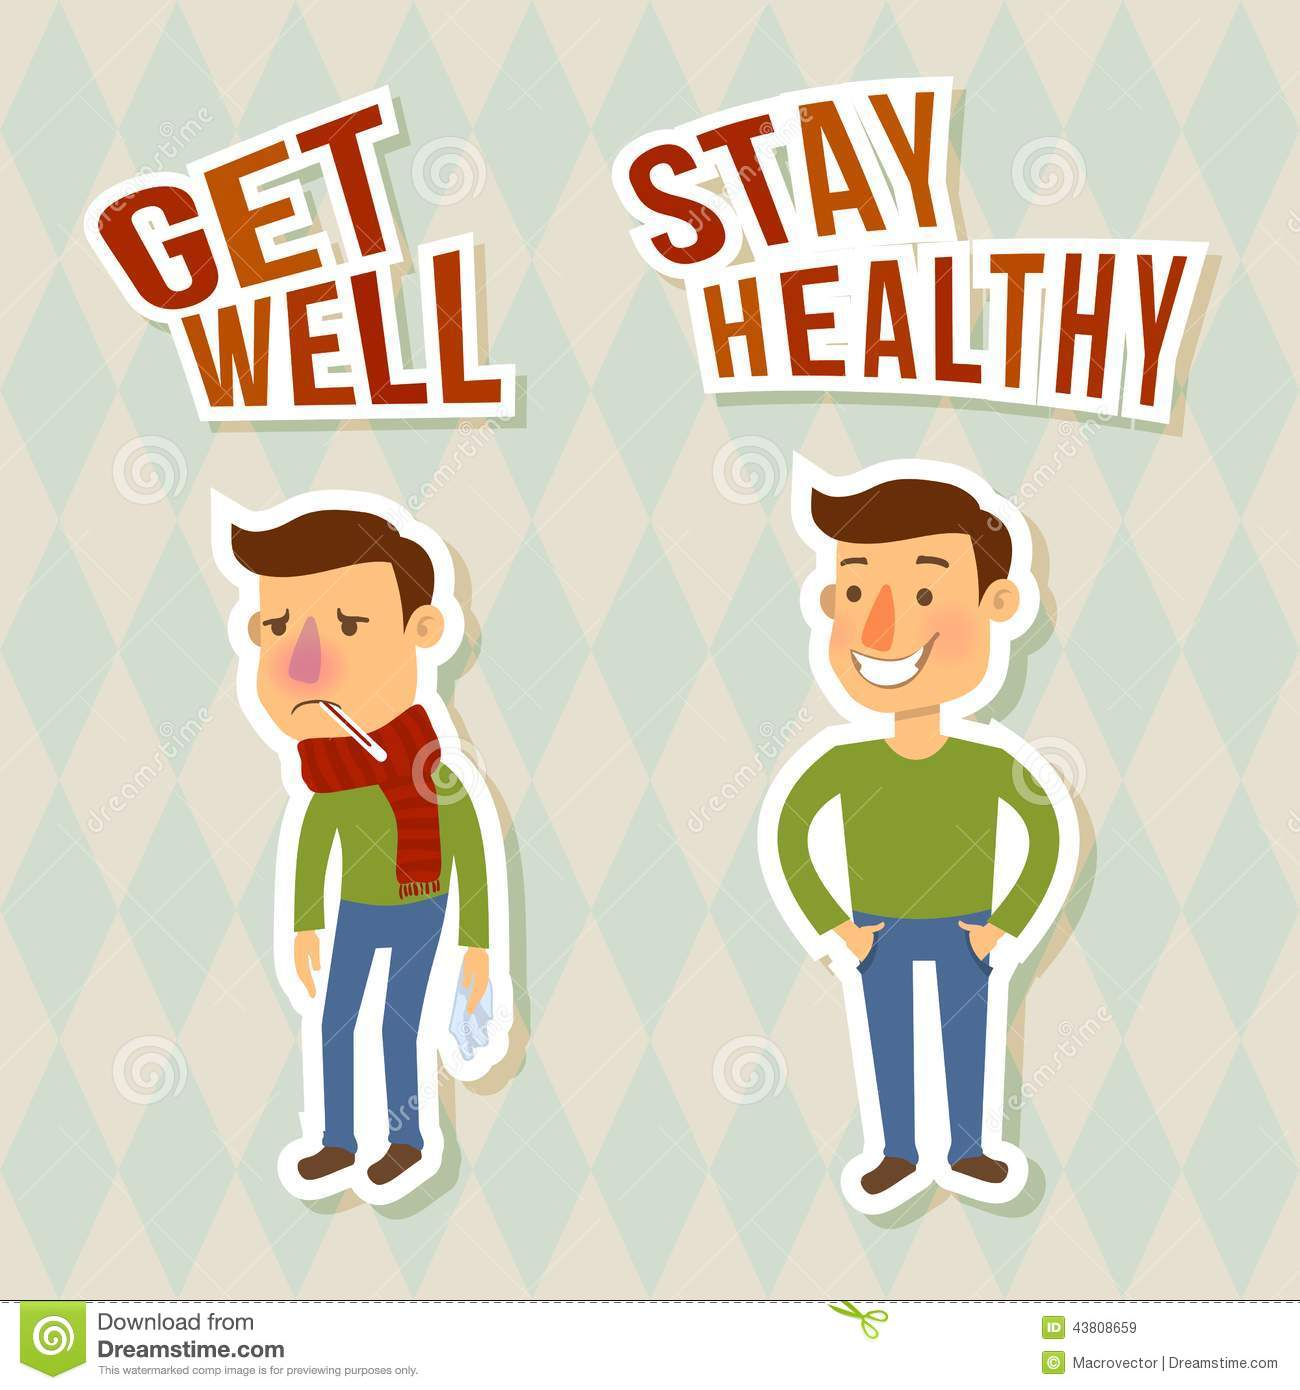 Sick and healthy man sticker characters isolated vector illustration.